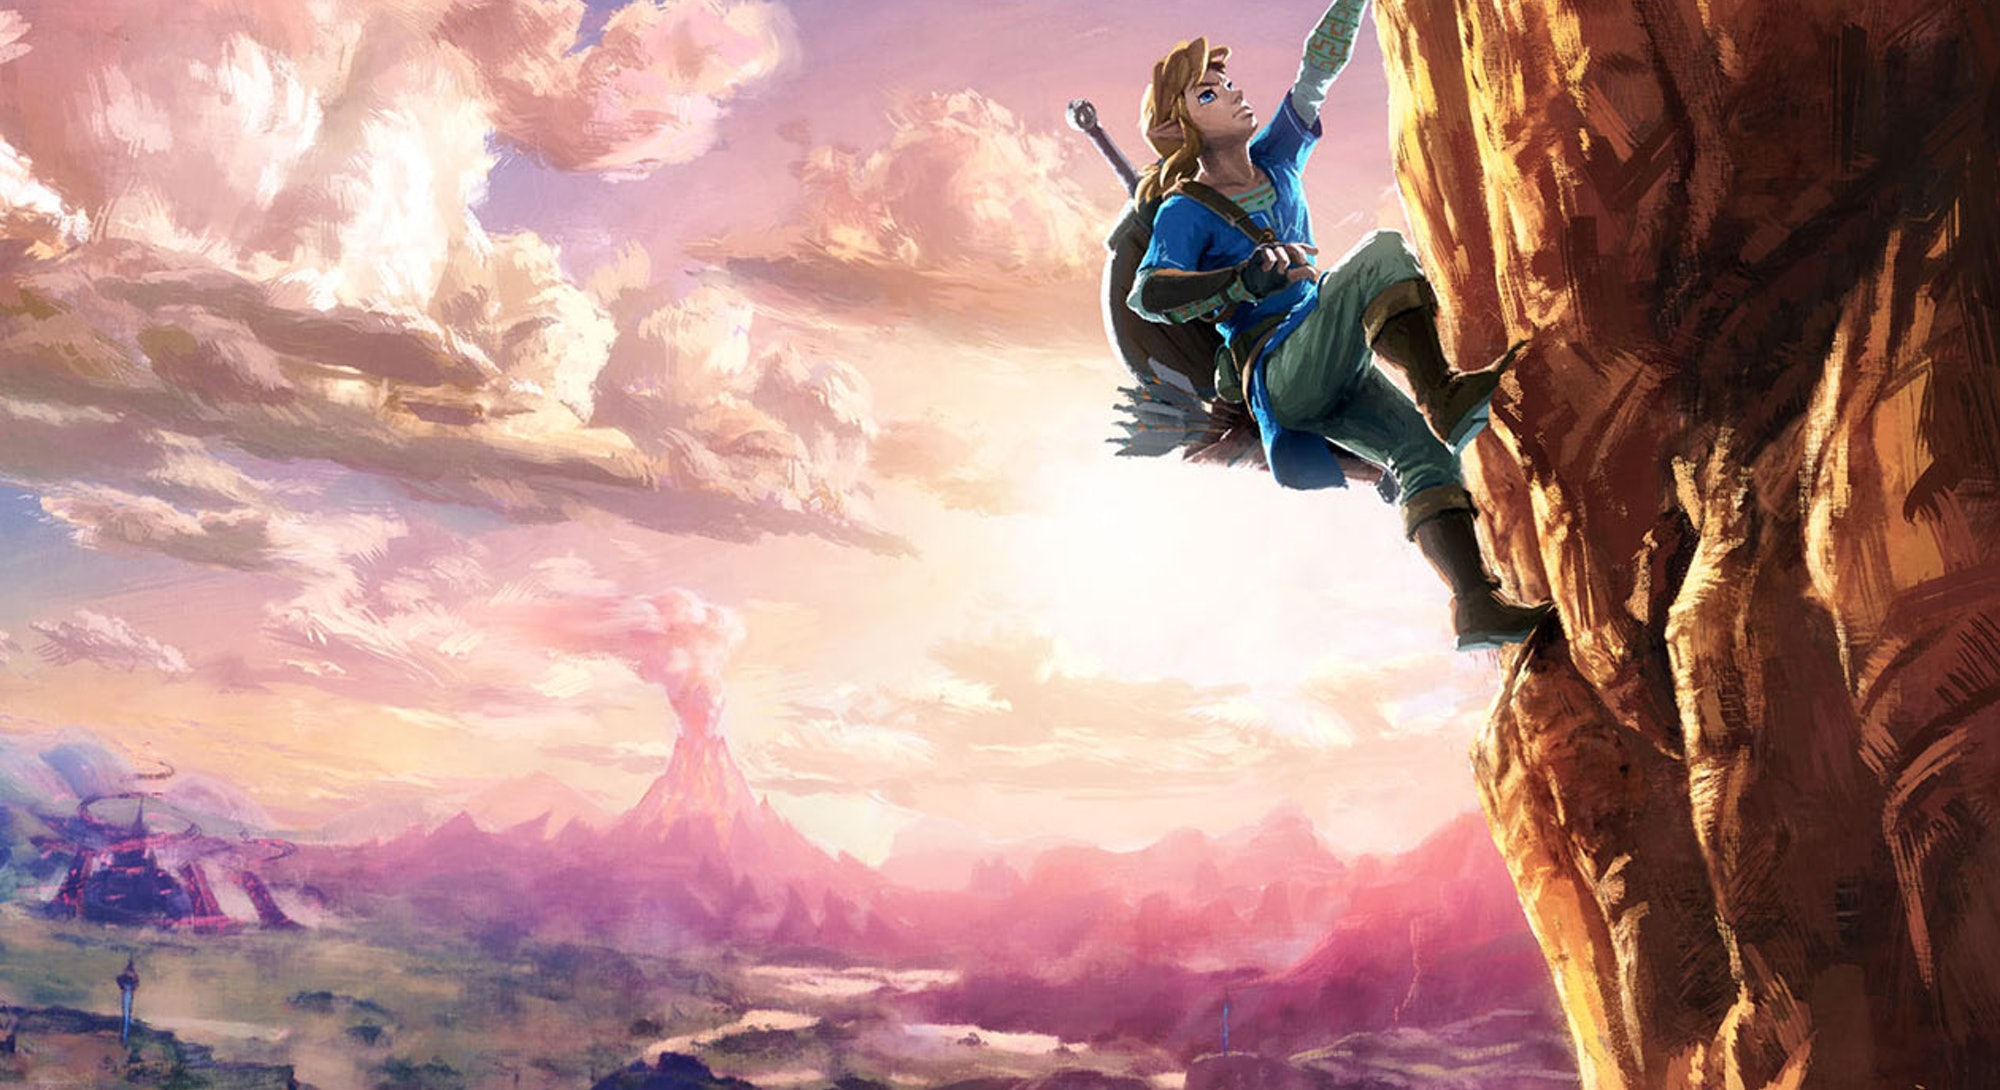 legend of zelda breath of the wild art link climbing mountain